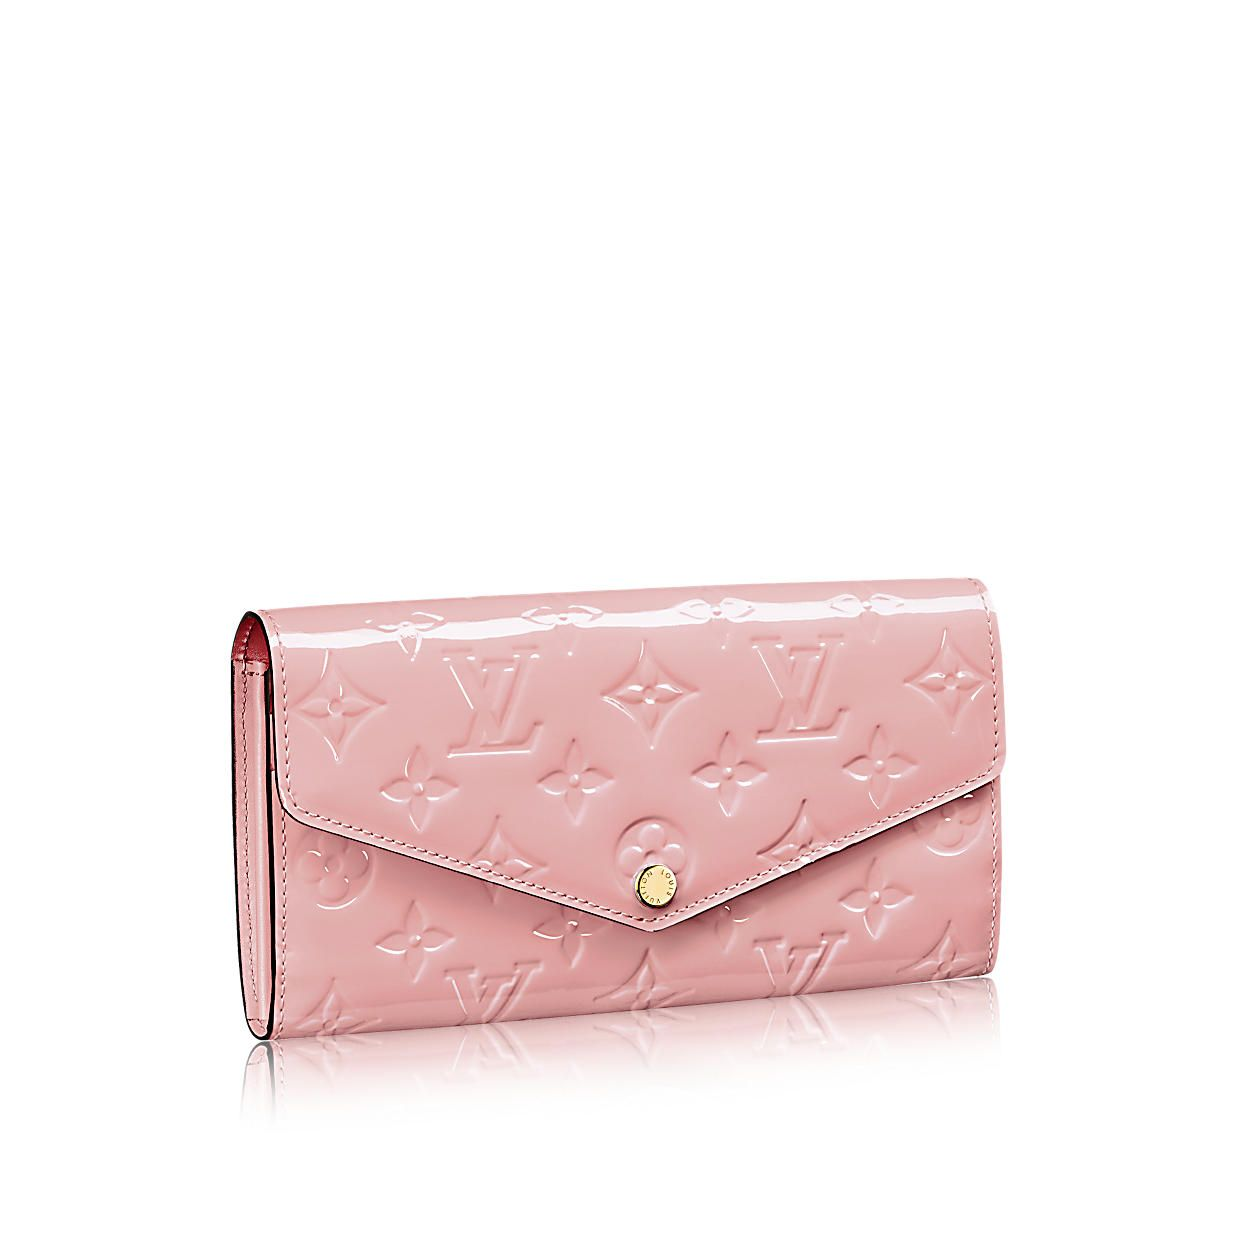 ad9155d0c3a Discover Louis Vuitton Sarah Wallet  This envelope-style Sarah wallet  combines an exterior in discreetly embossed Monogram Vernis leather with an  ...